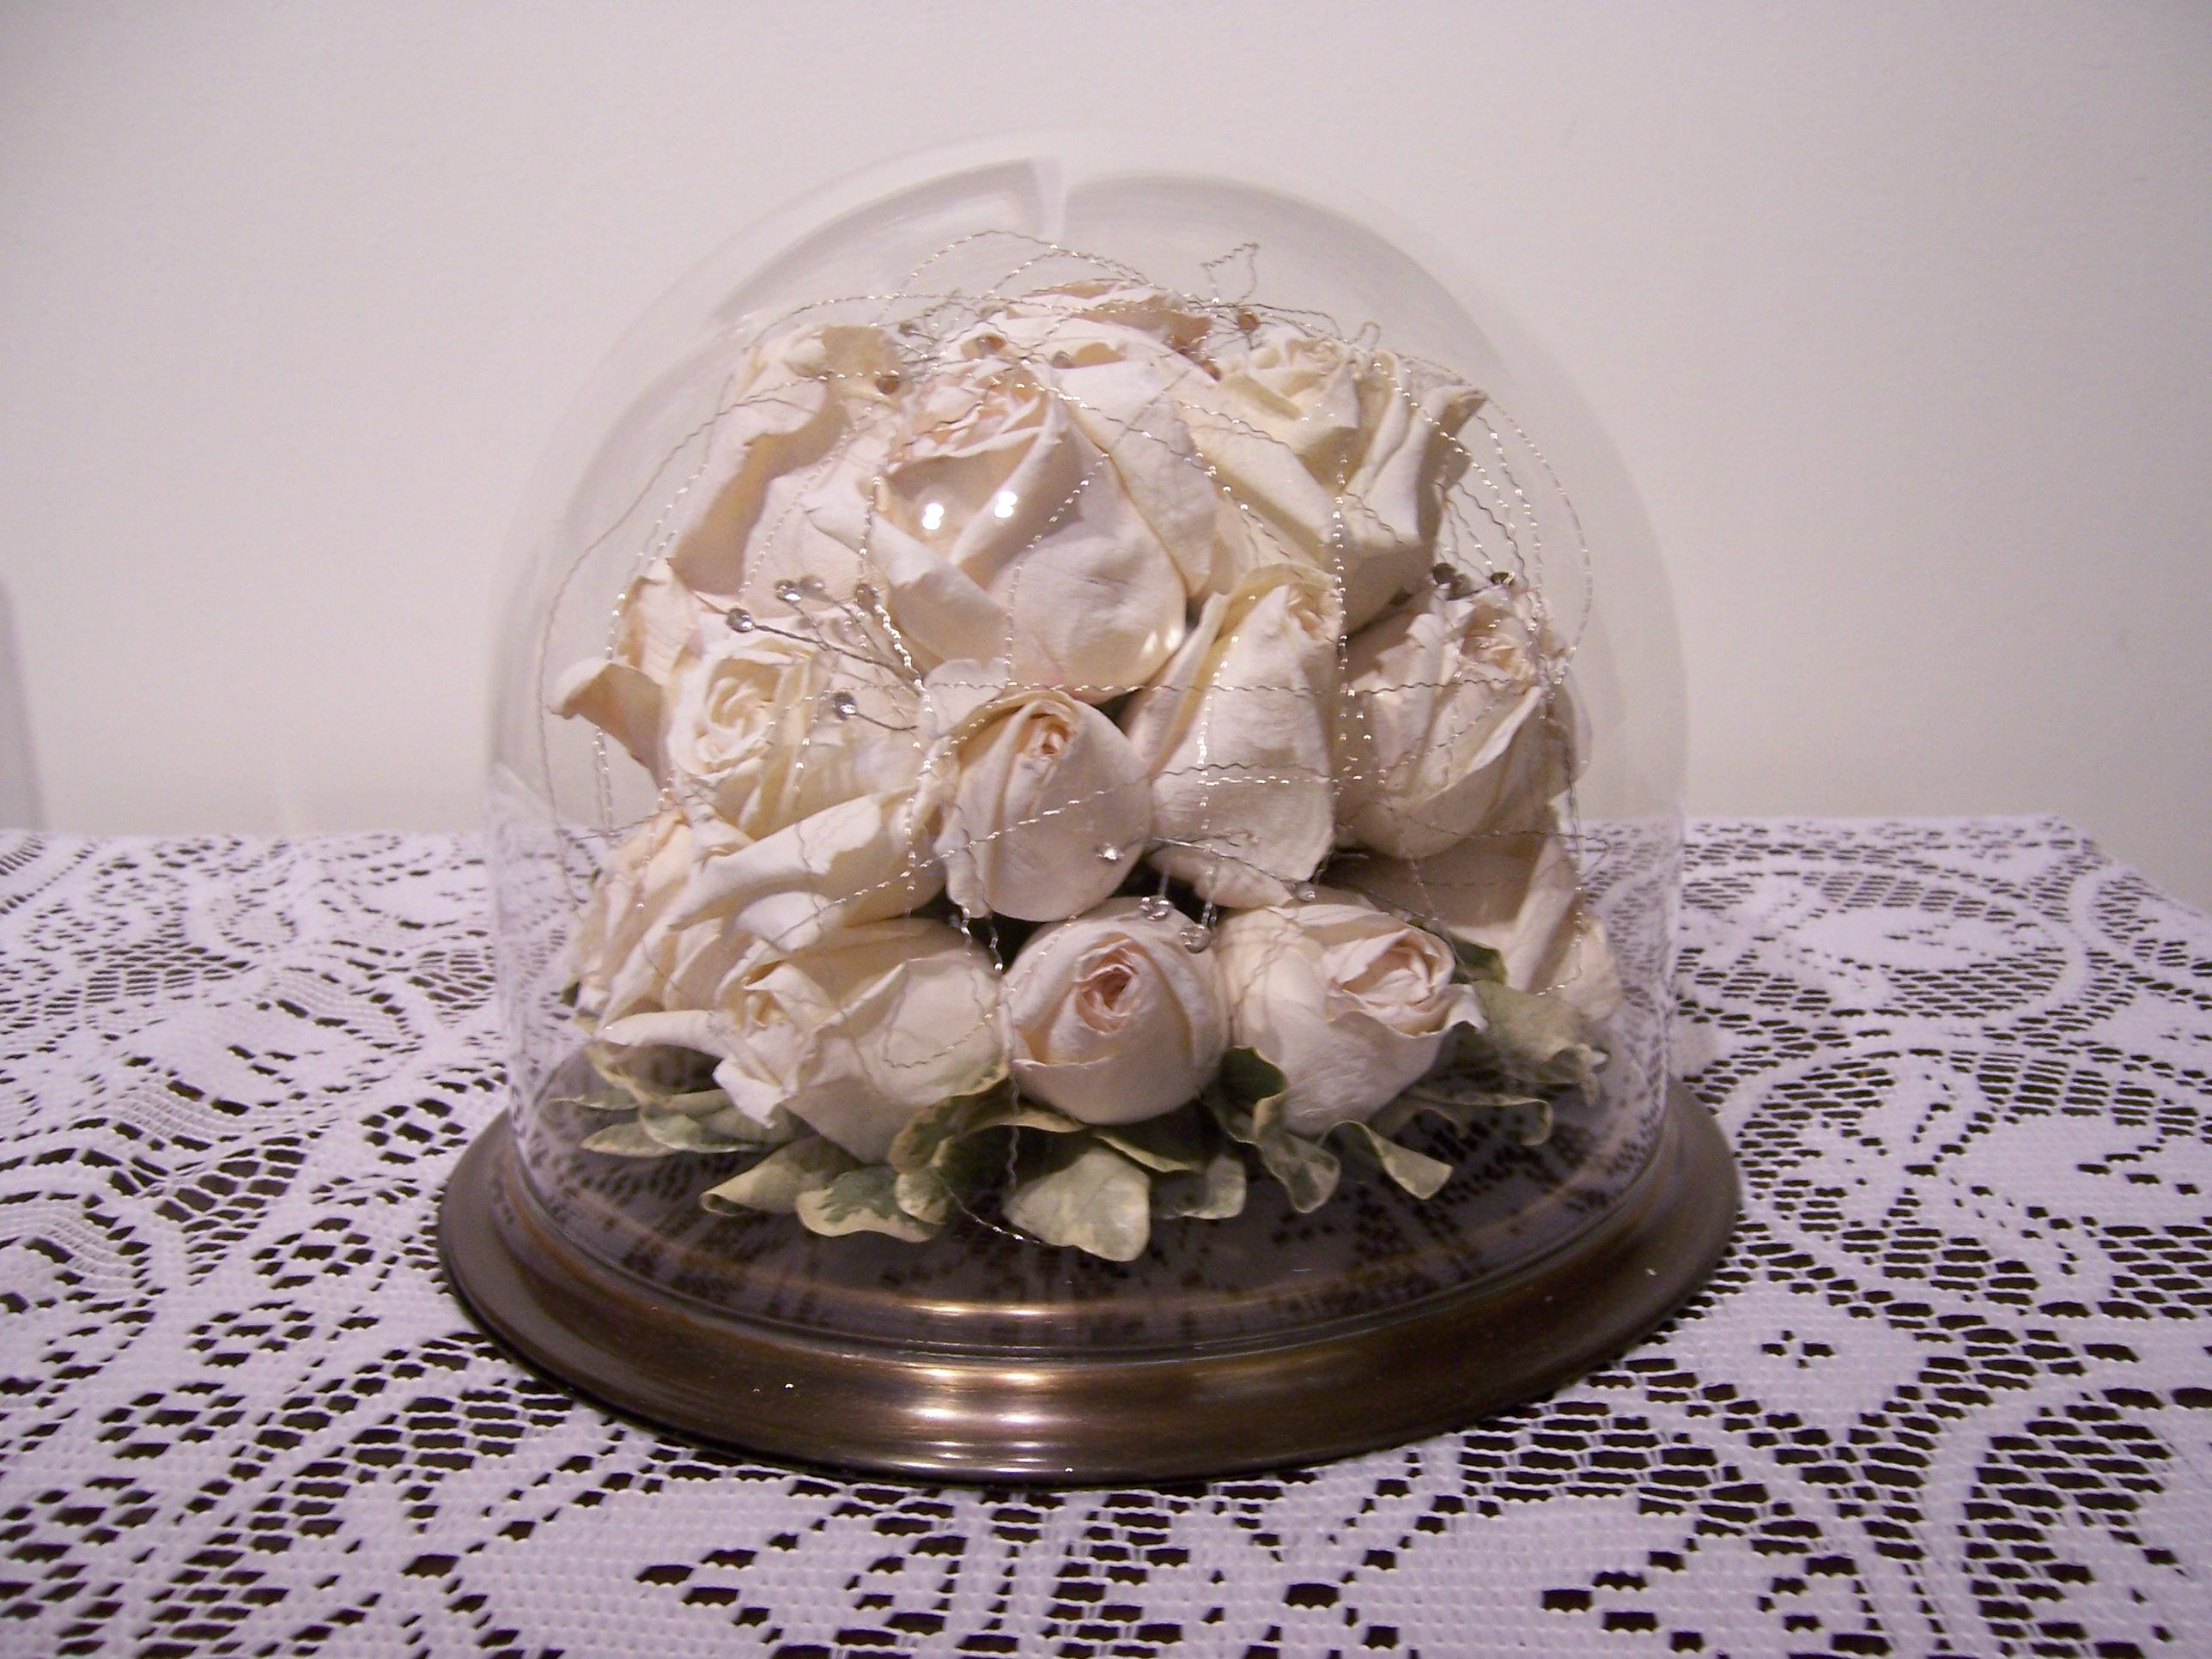 Preserve your wedding bouquet and display it for years to come! It will make you remember your special day and smile!